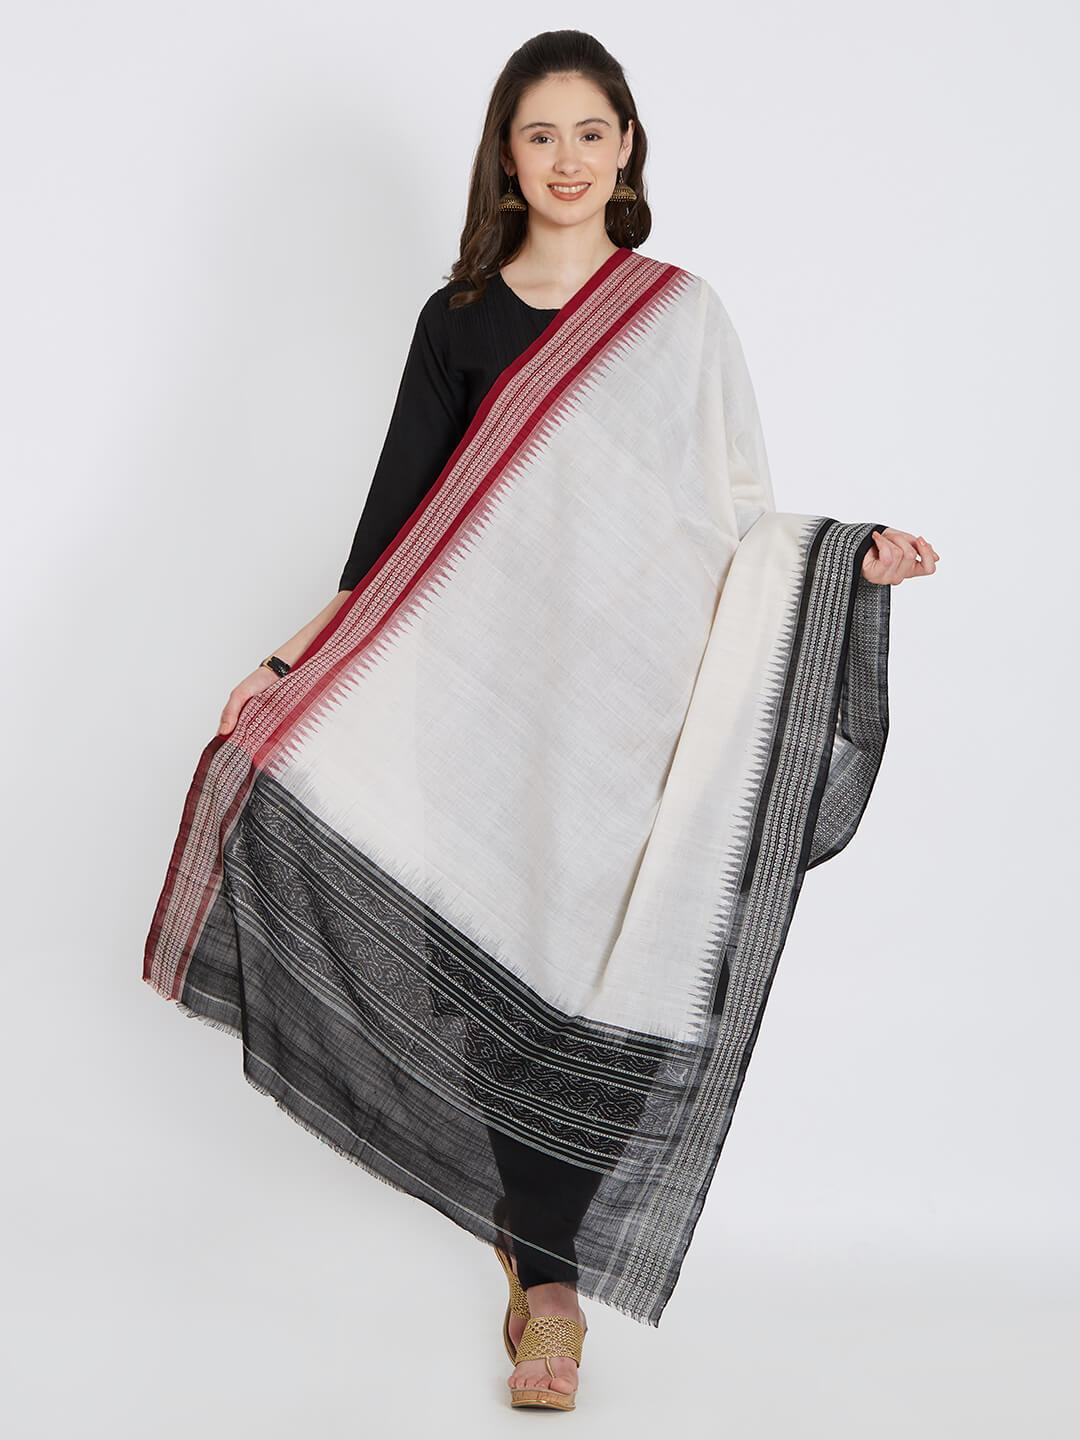 CraftsCollection.in - Off-White Cotton Ganga-Jamuna Sambalpuri Dupatta